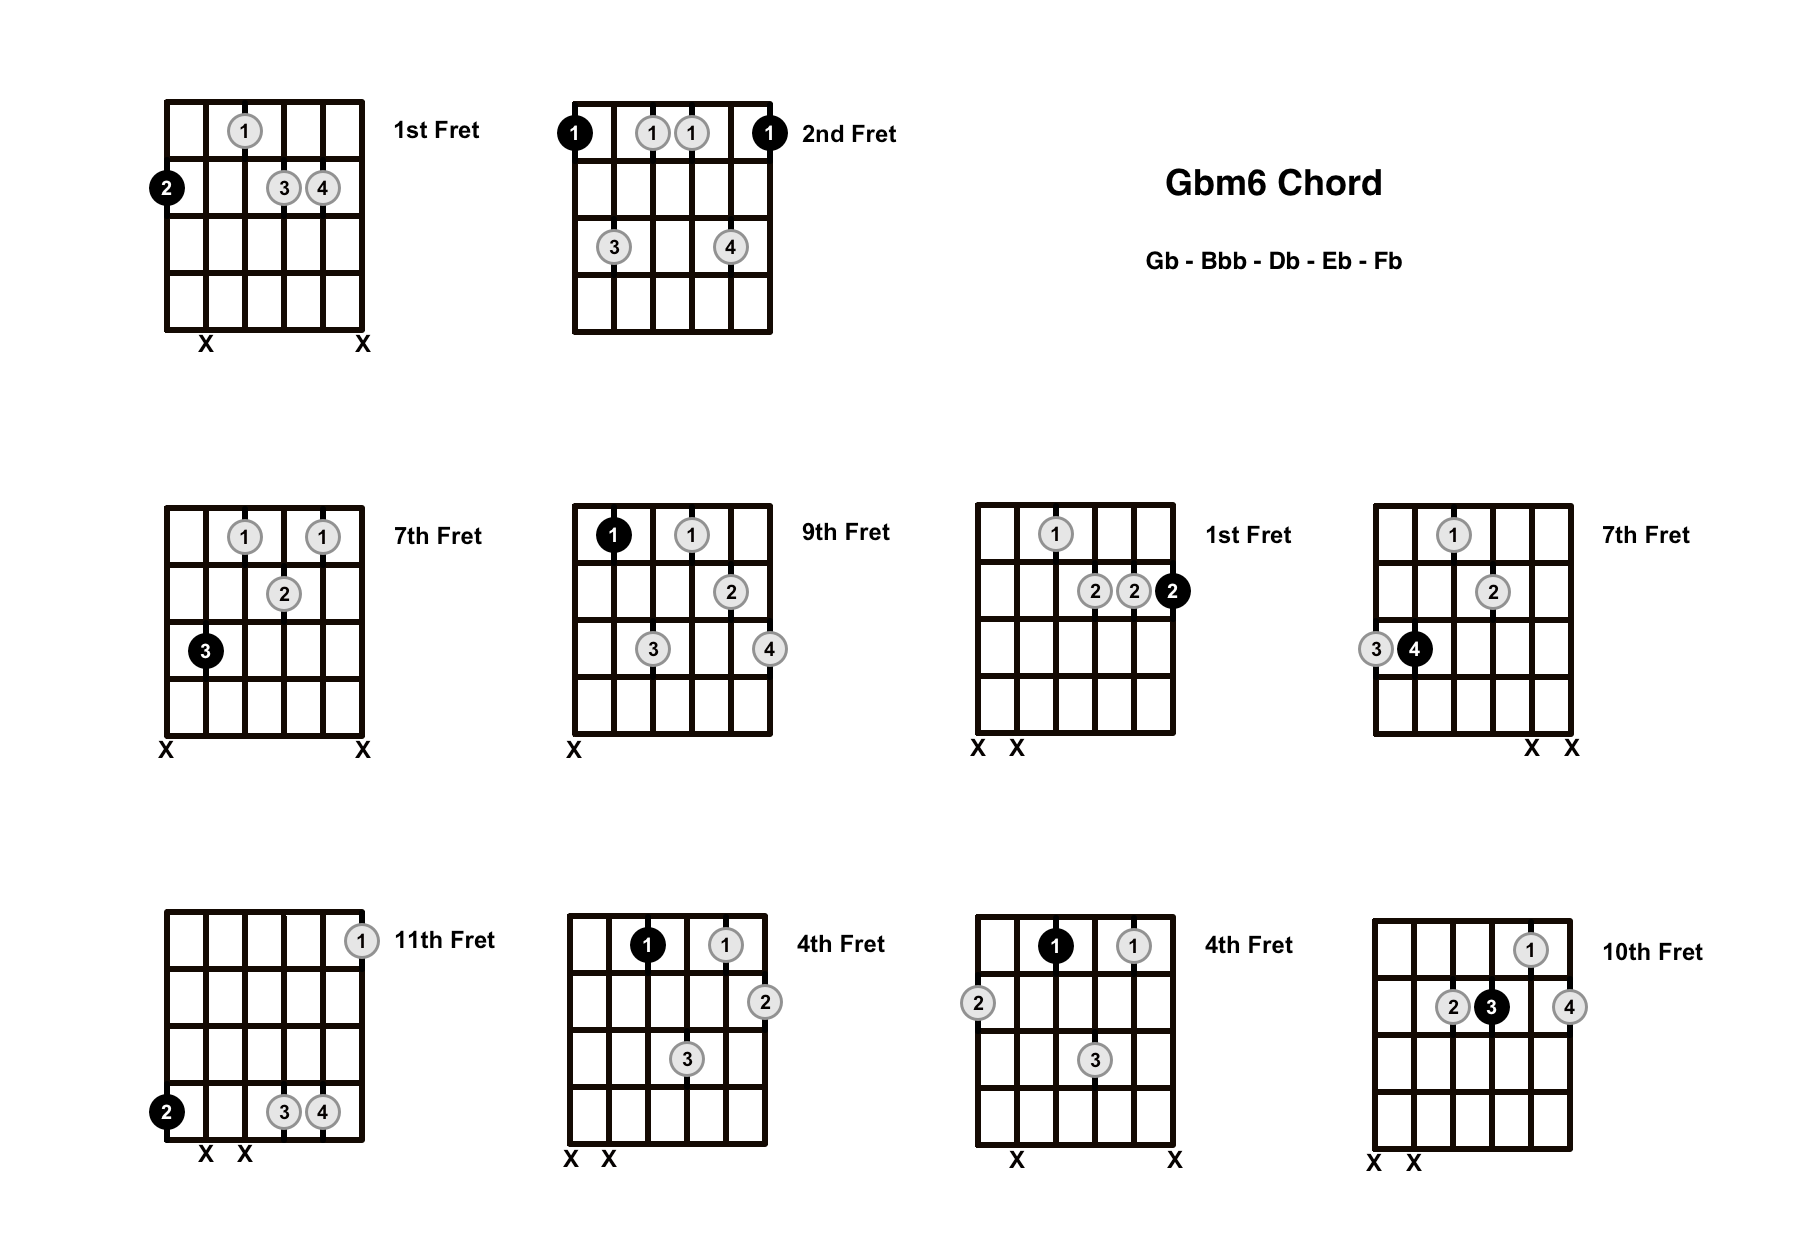 Gbm6 Chord On The Guitar (G Flat minor 6) – Diagrams, Finger Positions and Theory